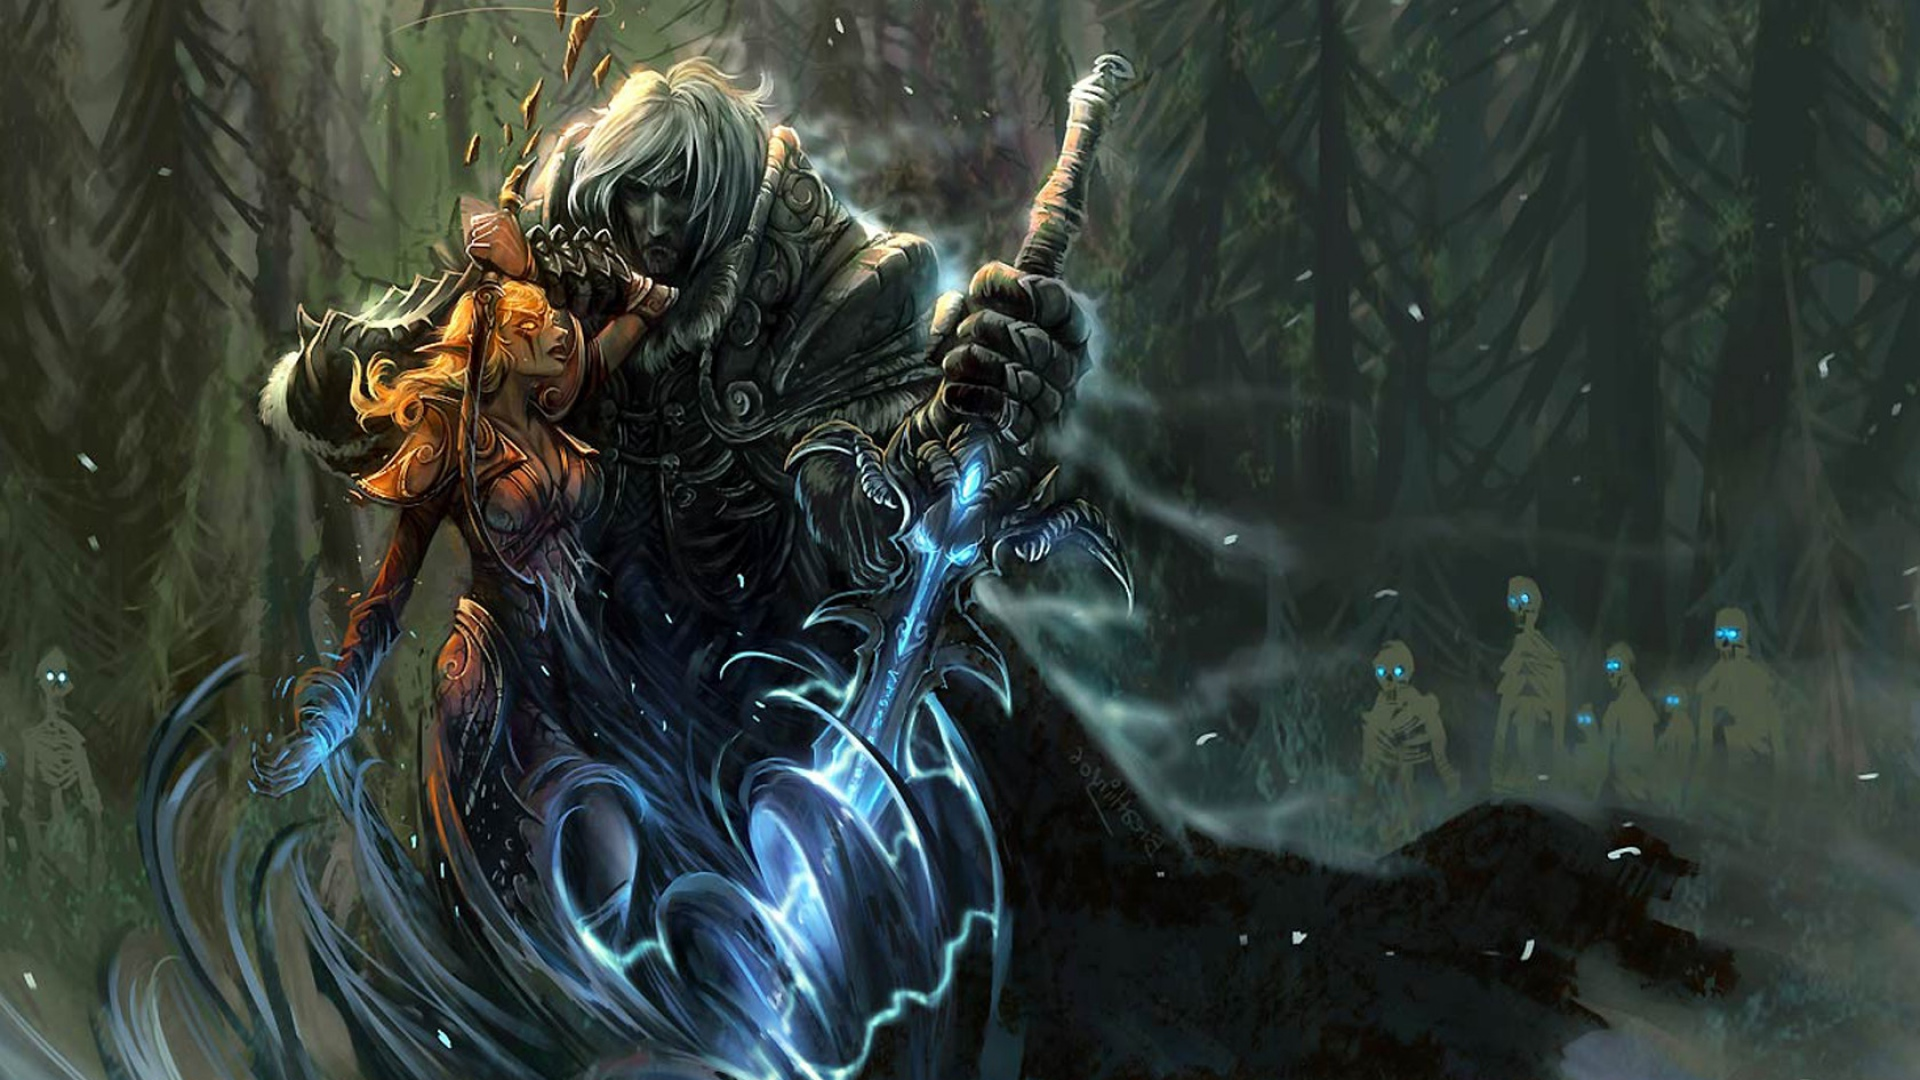 Download Wallpaper 1920x1080 World Of Warcraft Arthas Sword